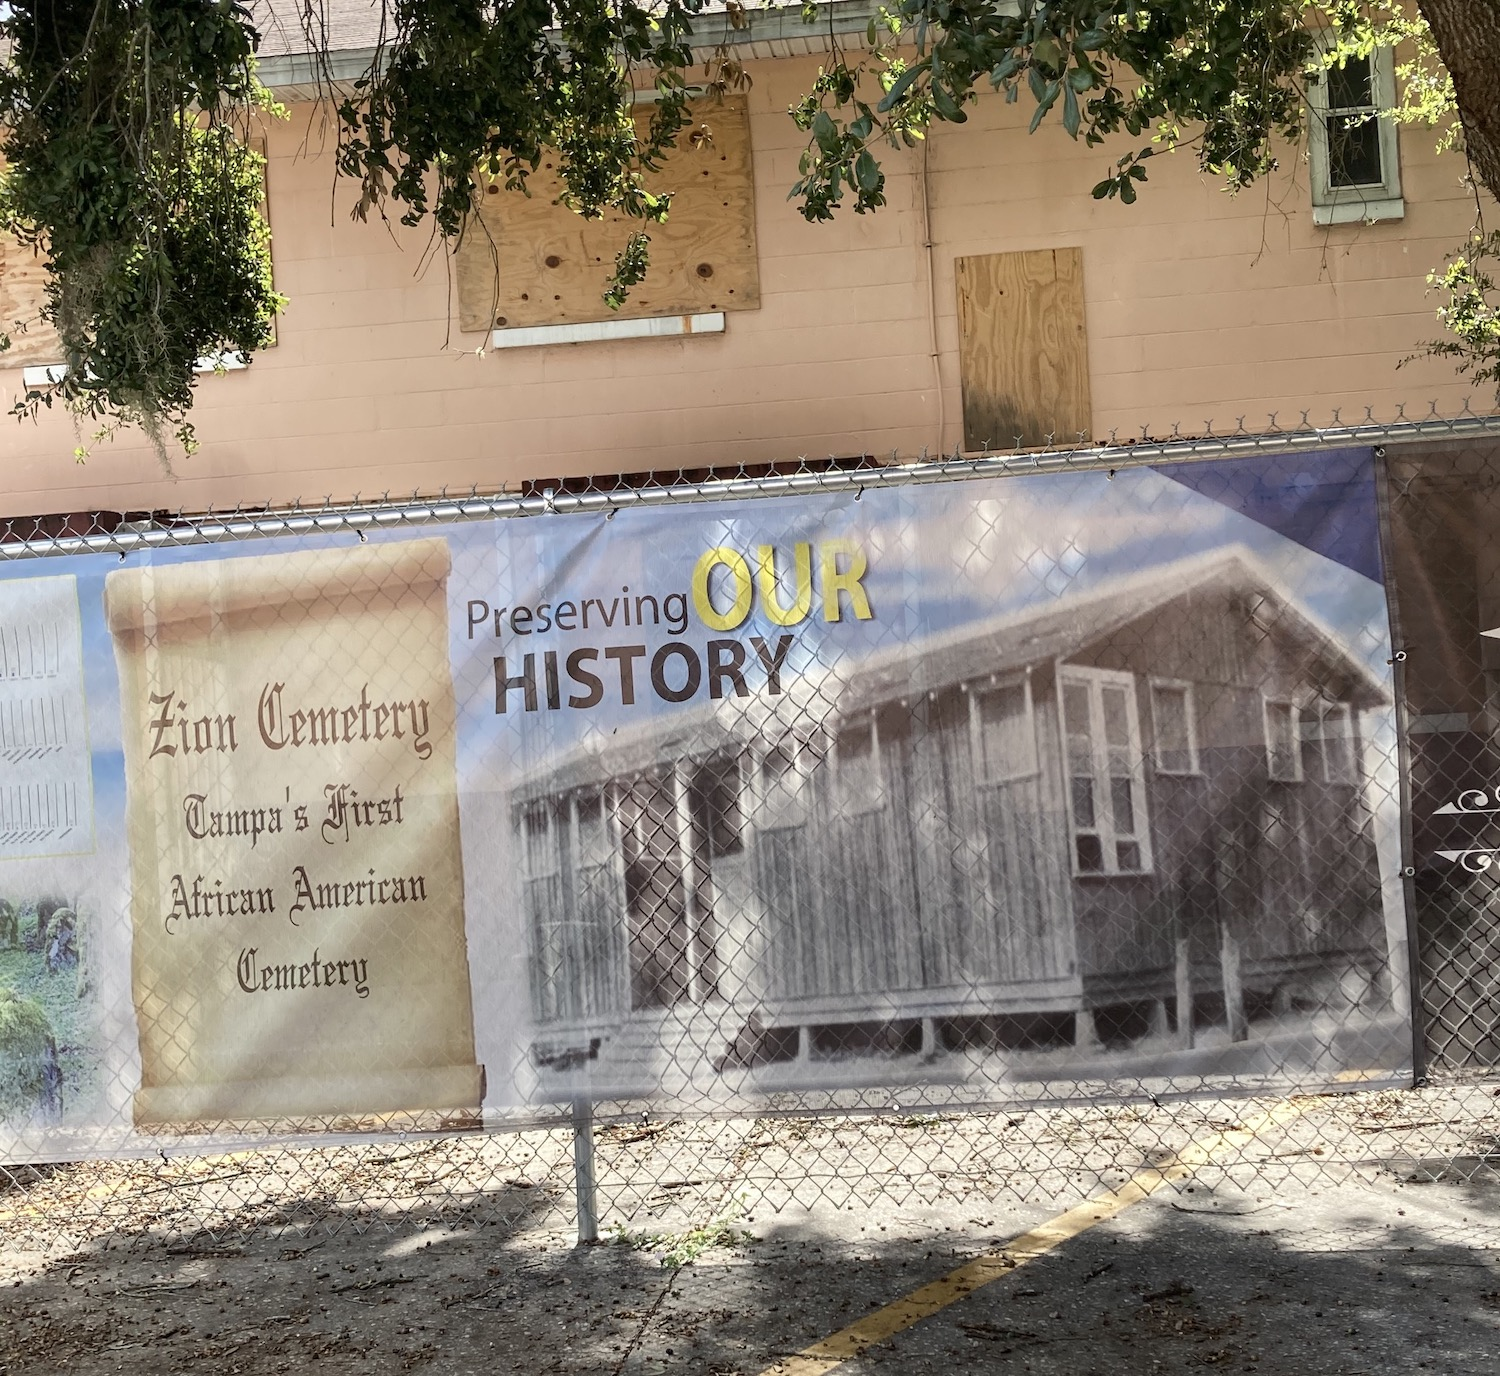 The project's focus will initially center on Zion Cemetery, one of the first African American cemeteries in Tampa Bay, located beneath roads, warehouses and a public housing complex just north of downtown Tampa, and St. Petersburg's Oaklawn Cemetery complex, which consists of three cemeteries that lie under parking lots at Tropicana Field.